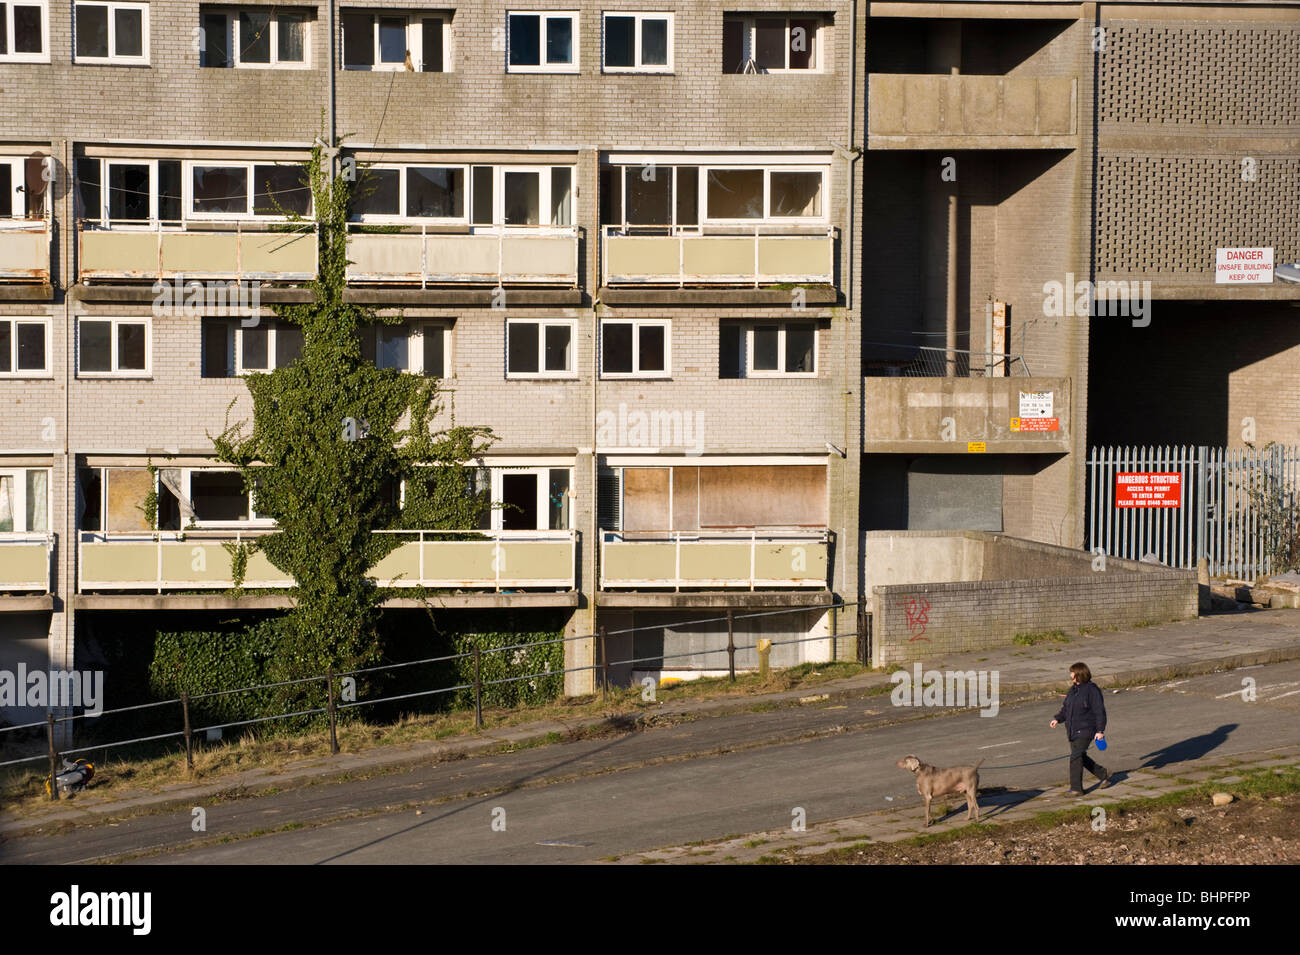 Derelict 'Billy Banks' Estate of council flats now known as the Penarth Heights Regeneration Project, Penarth, - Stock Image